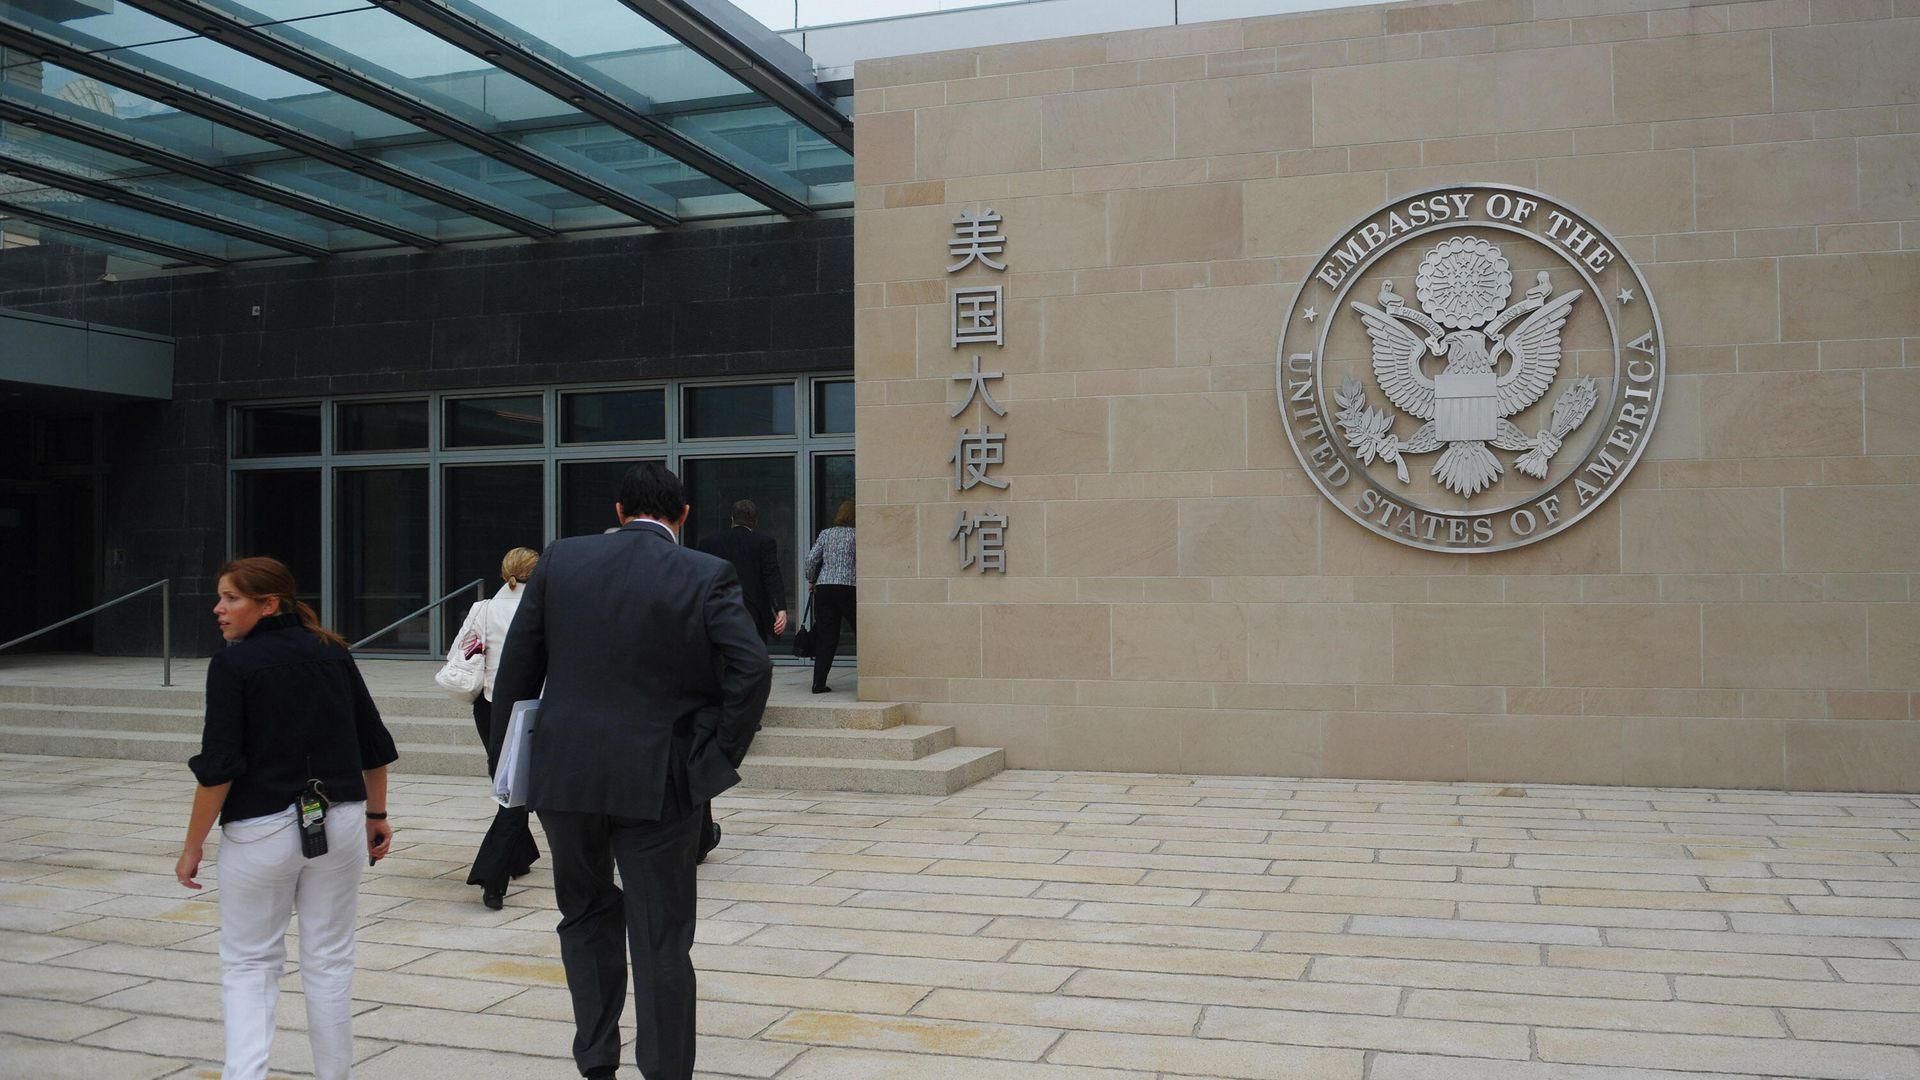 China To Impose Reciprocal Restrictions On All Us Diplomats The Doha Globe